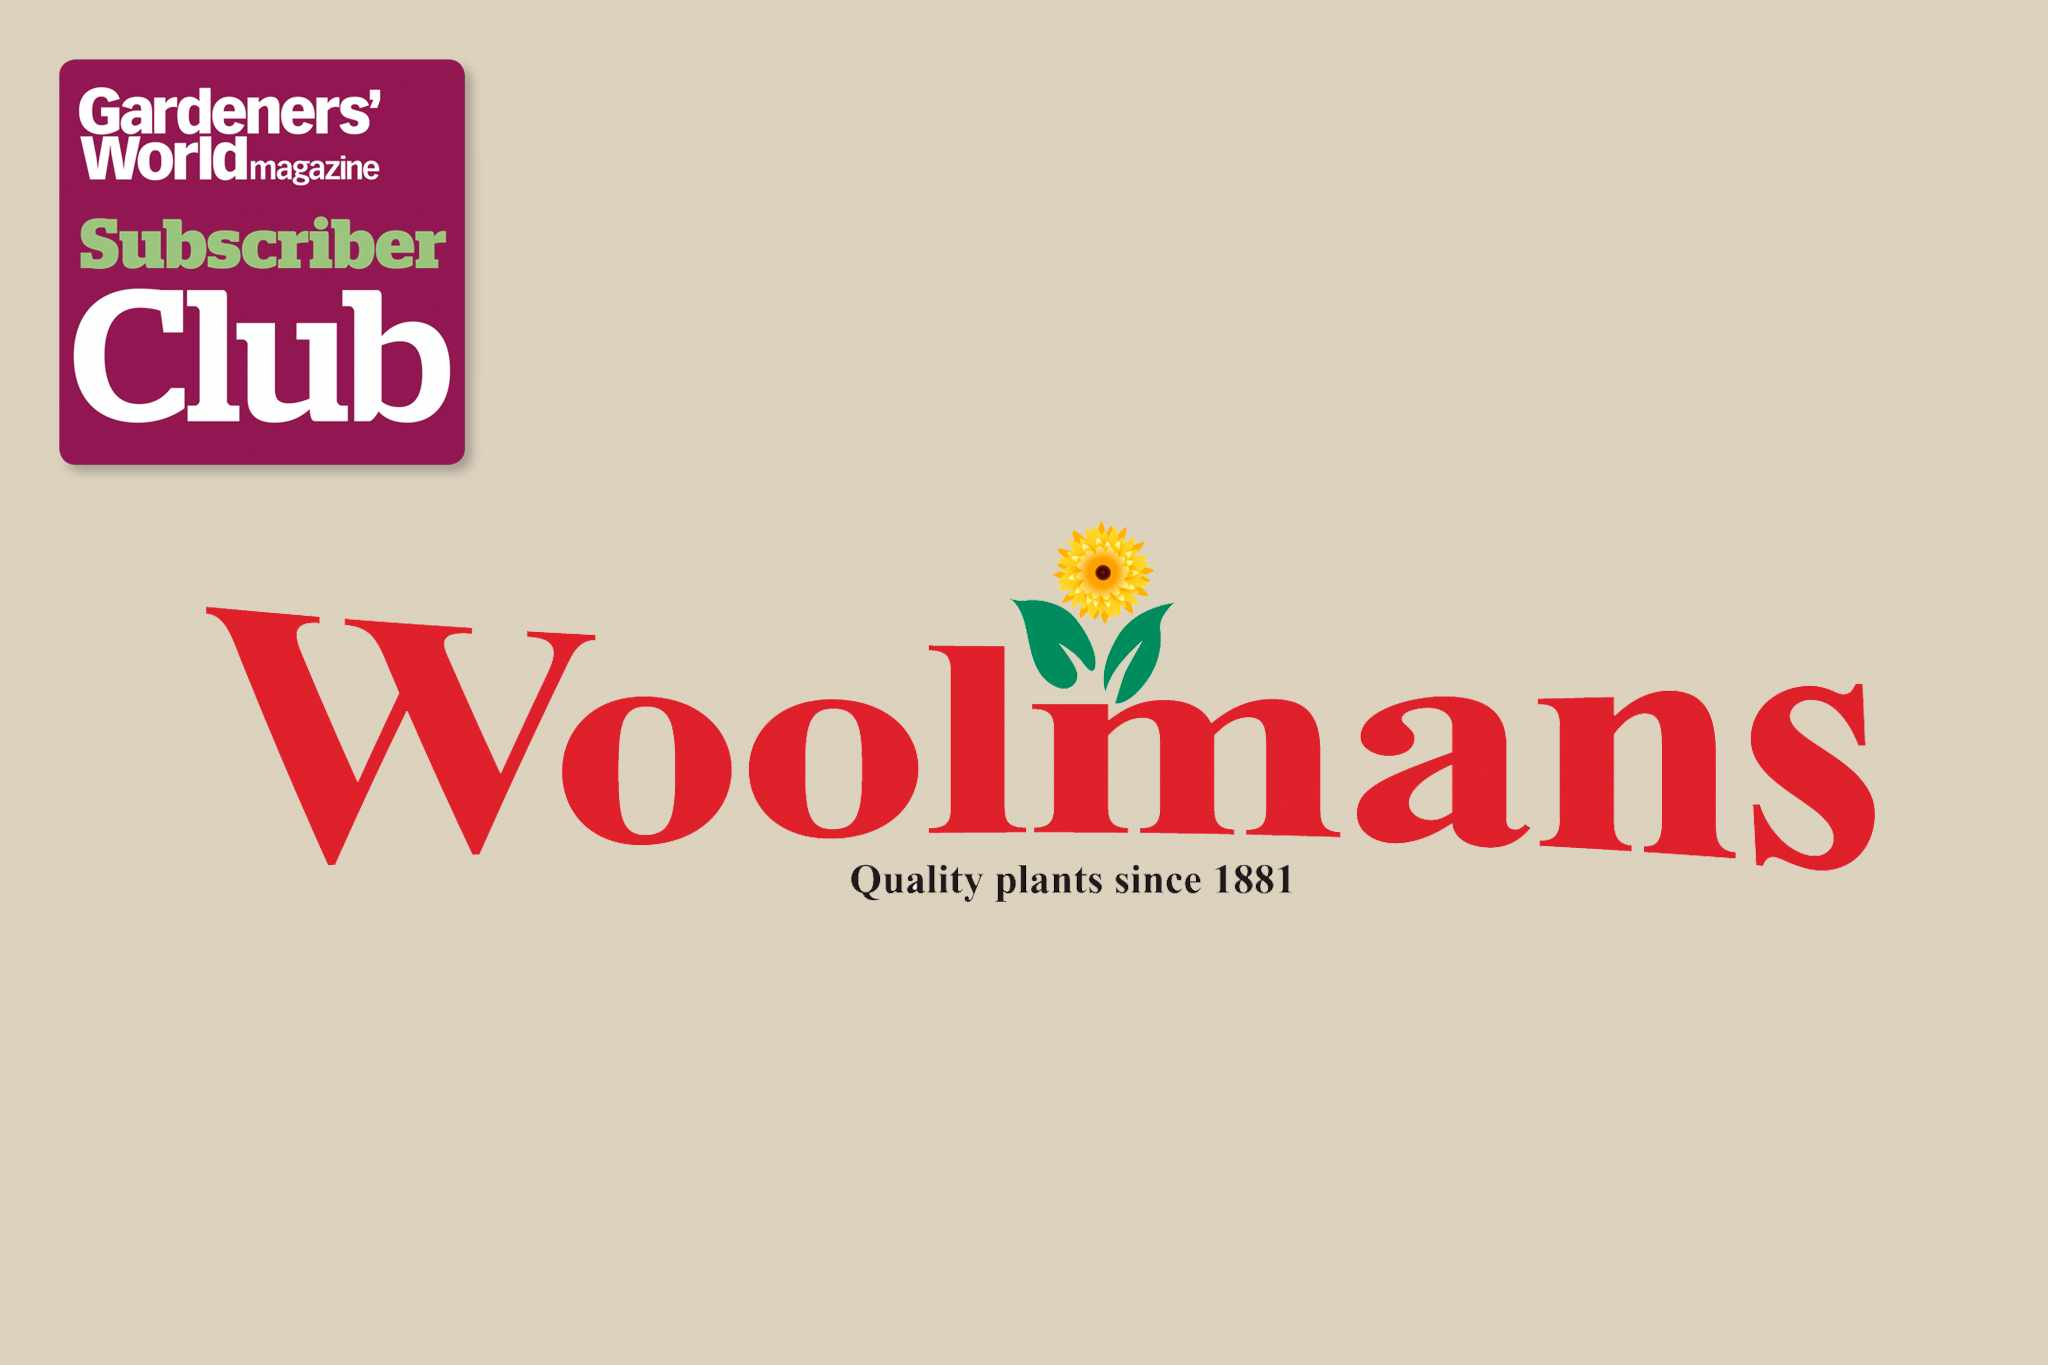 Woolmans BBC Gardeners' World Magazine Subscriber Club discount